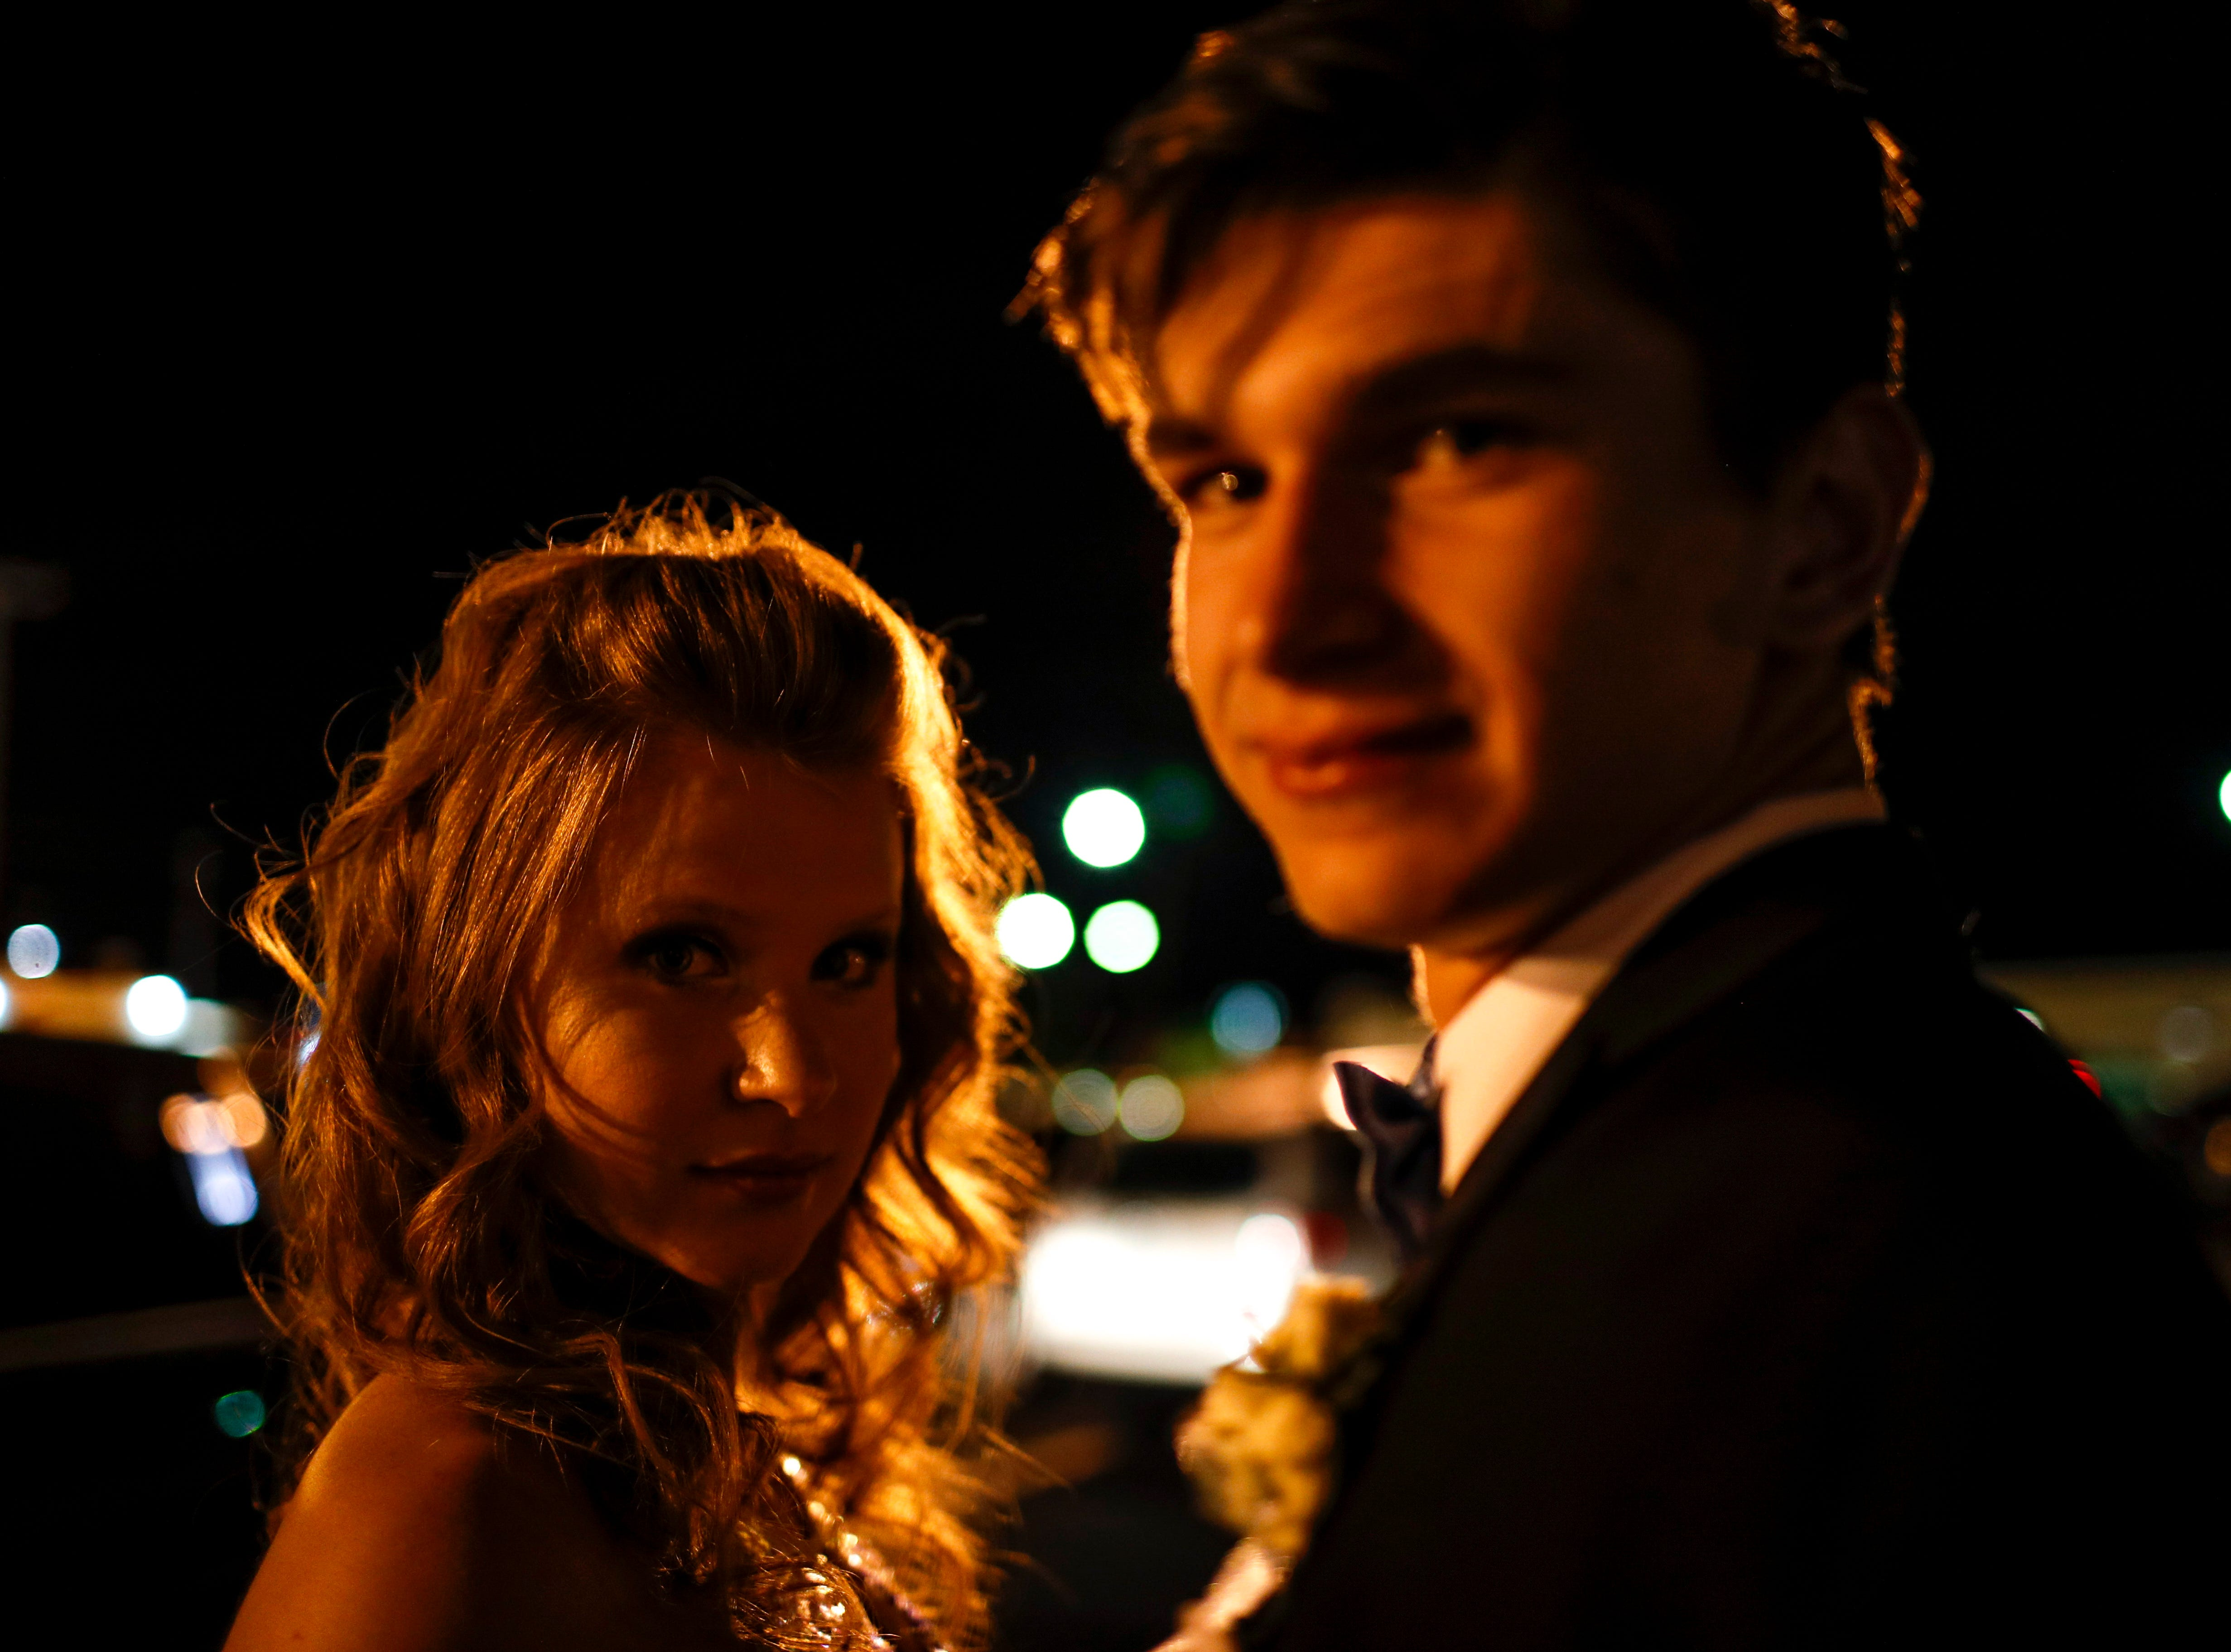 Clarksville High School students celebrate their 2019 prom at The Belle Hollow in Clarksville, Tenn., on Saturday, April 27, 2019.